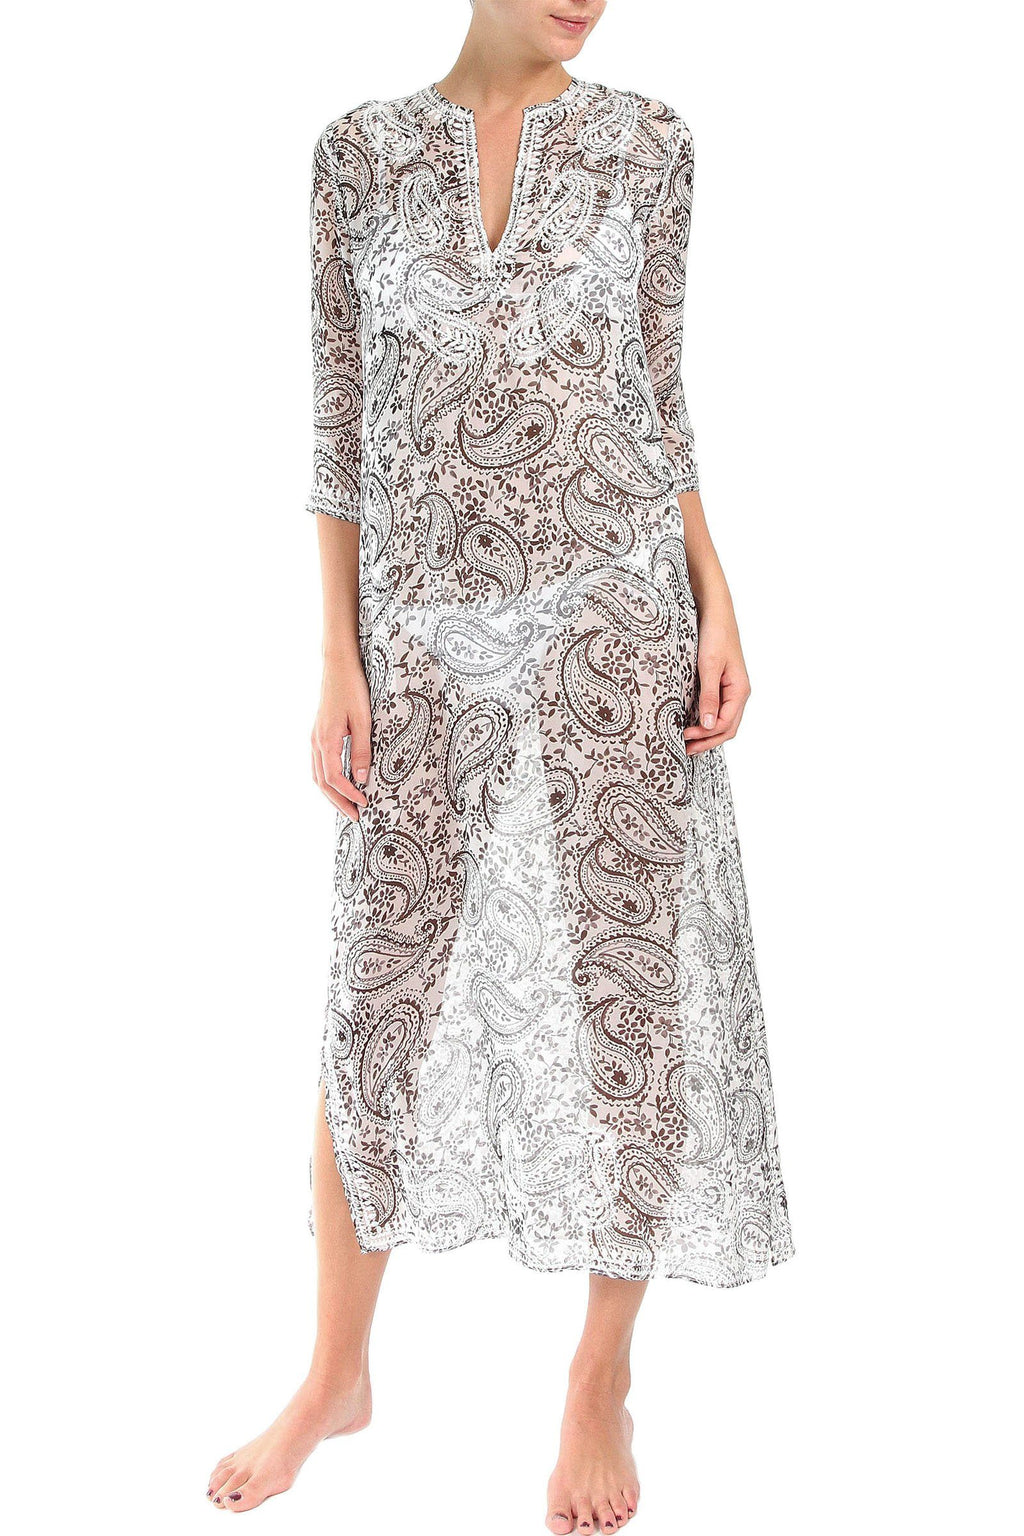 Embroidered Long Silk Chiffon Caftan Marie France Van Damme 0 Paisley Flower White Grey